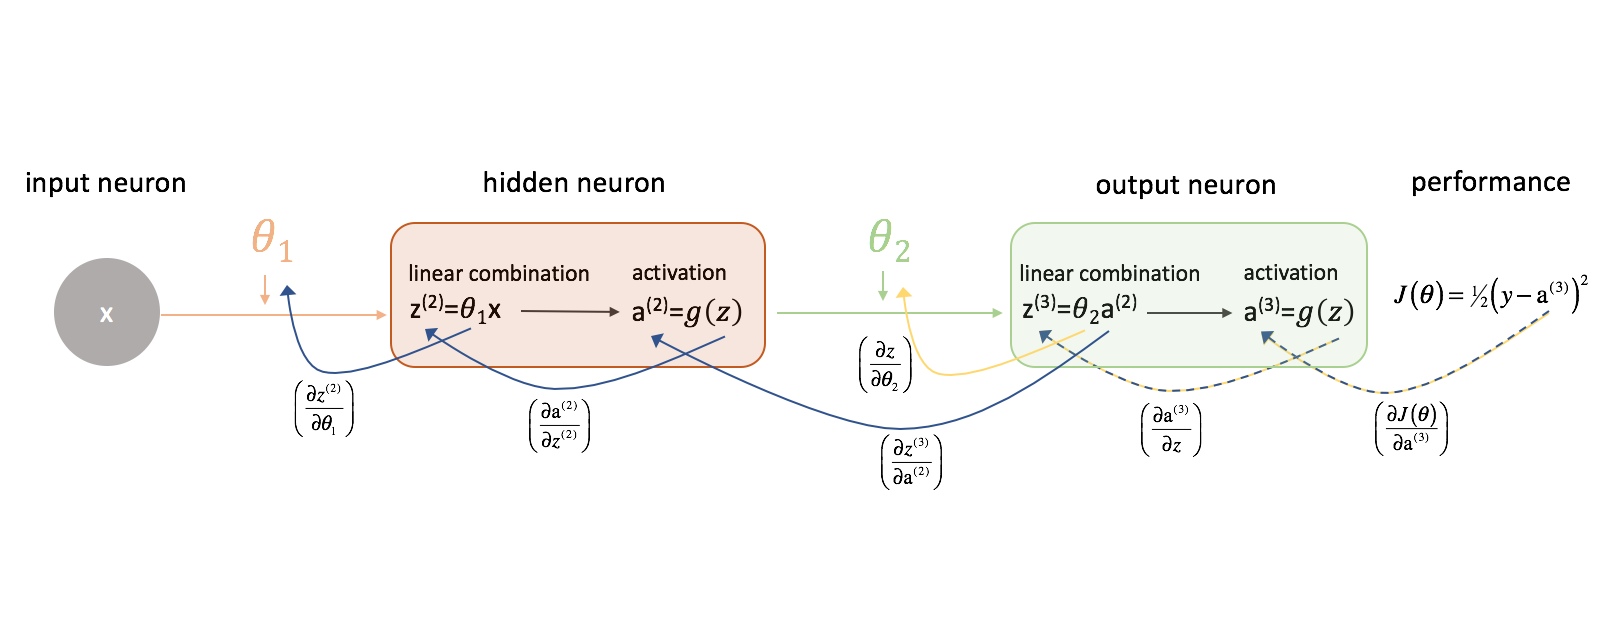 Neural networks: training with backpropagation